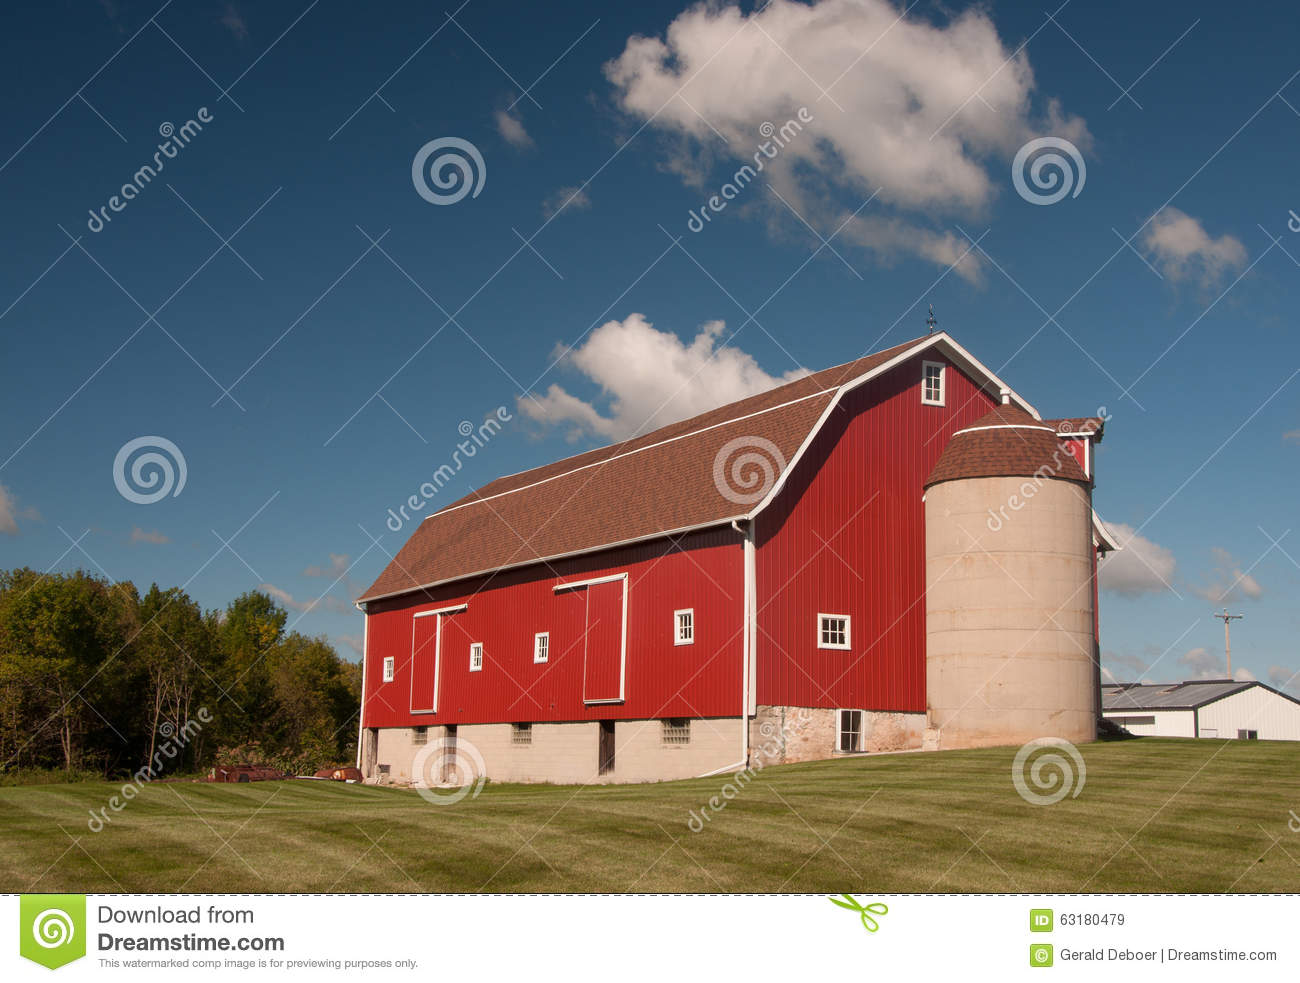 beautiful barn stock photo - image: 63180479